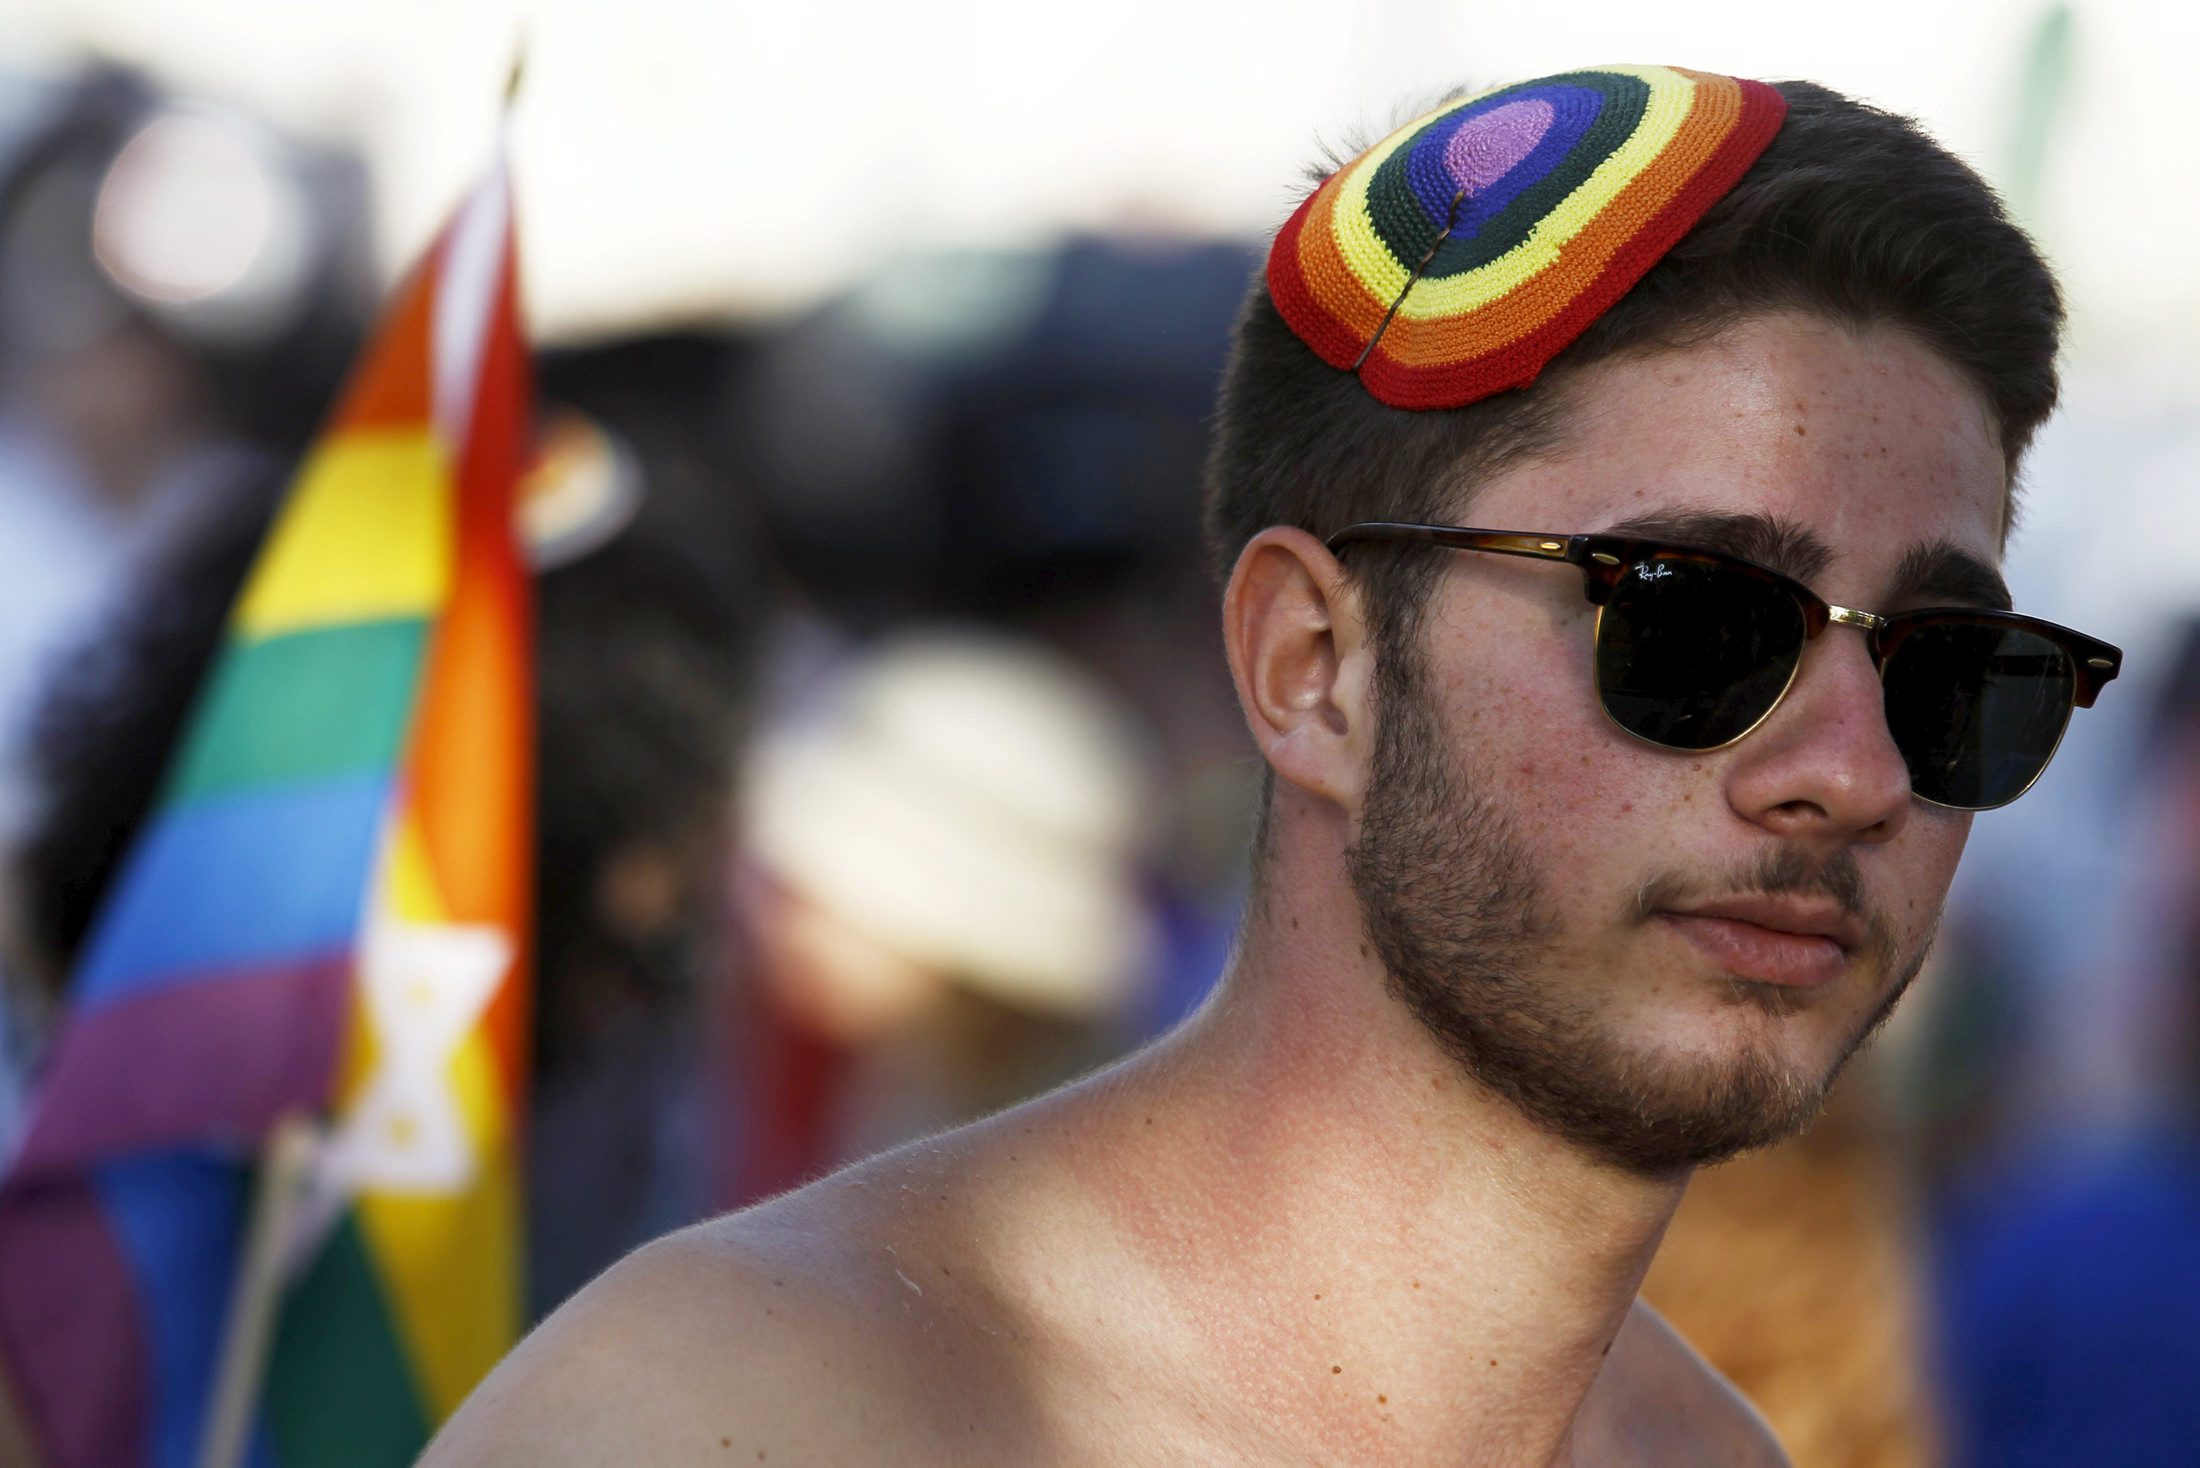 Israel minister under fire for gay conversion therapy support